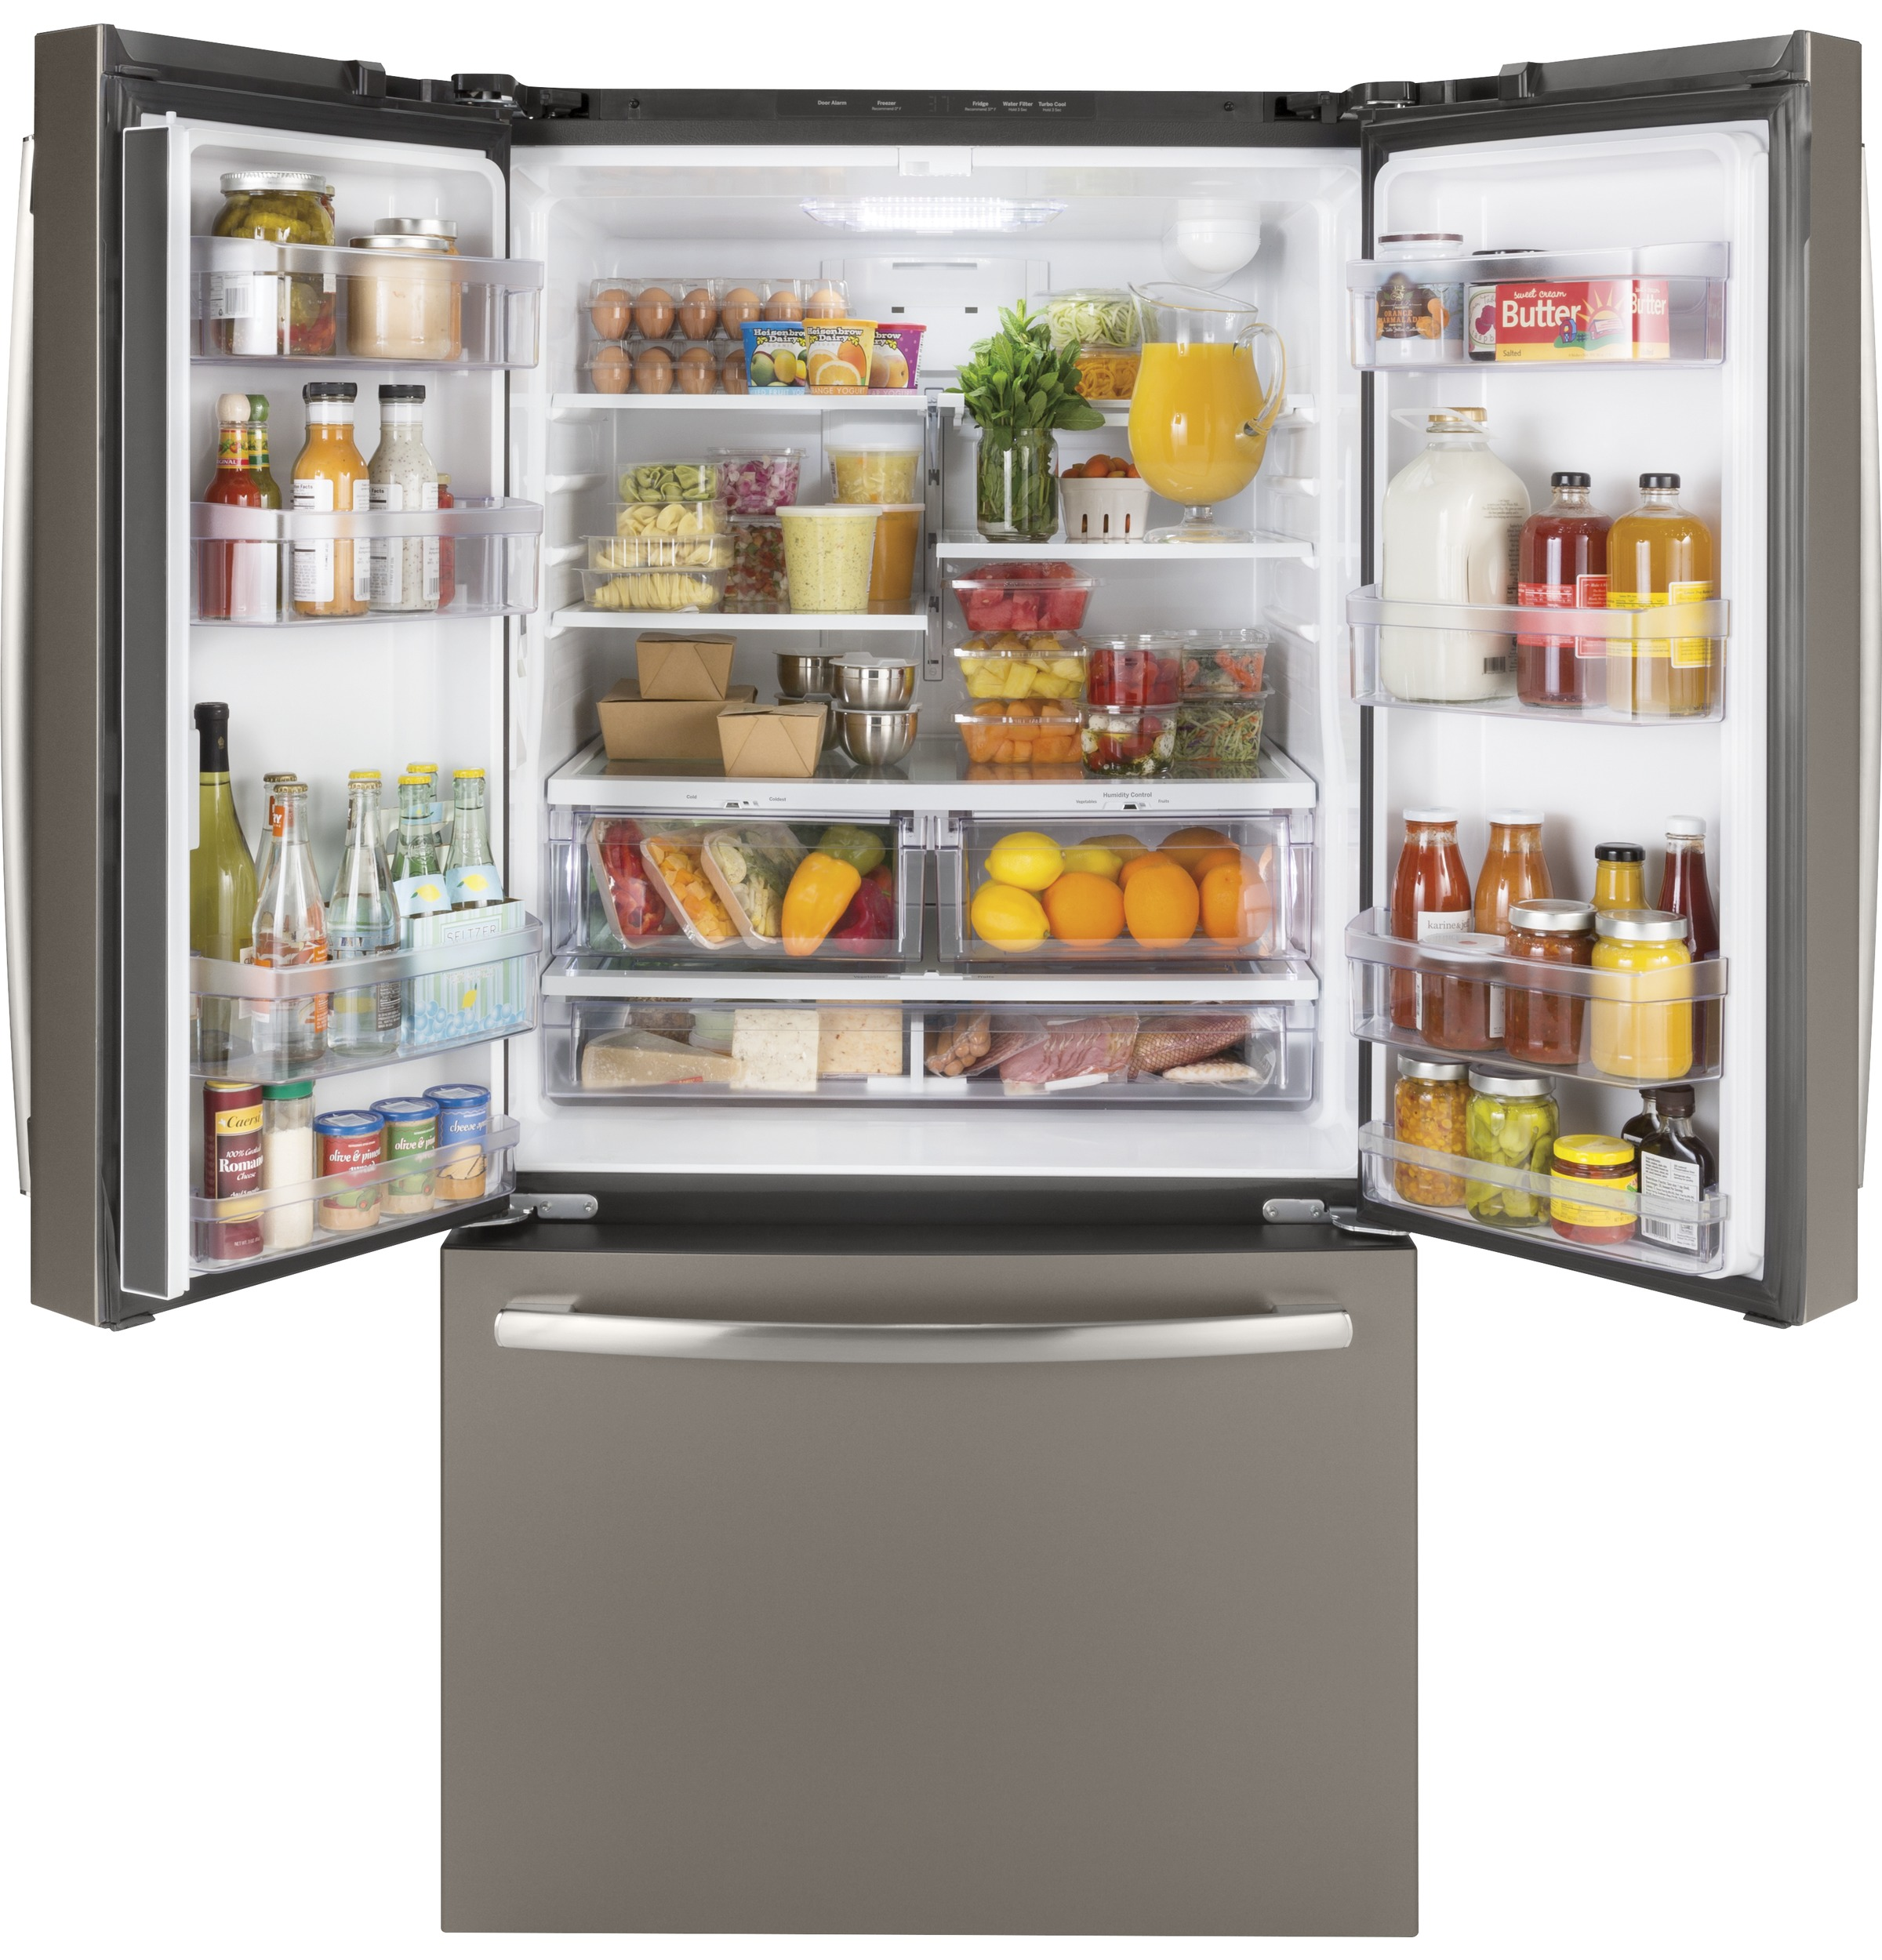 Model: GNE27JMMES | GE GE® ENERGY STAR® 27.0 Cu. Ft. French-Door Refrigerator